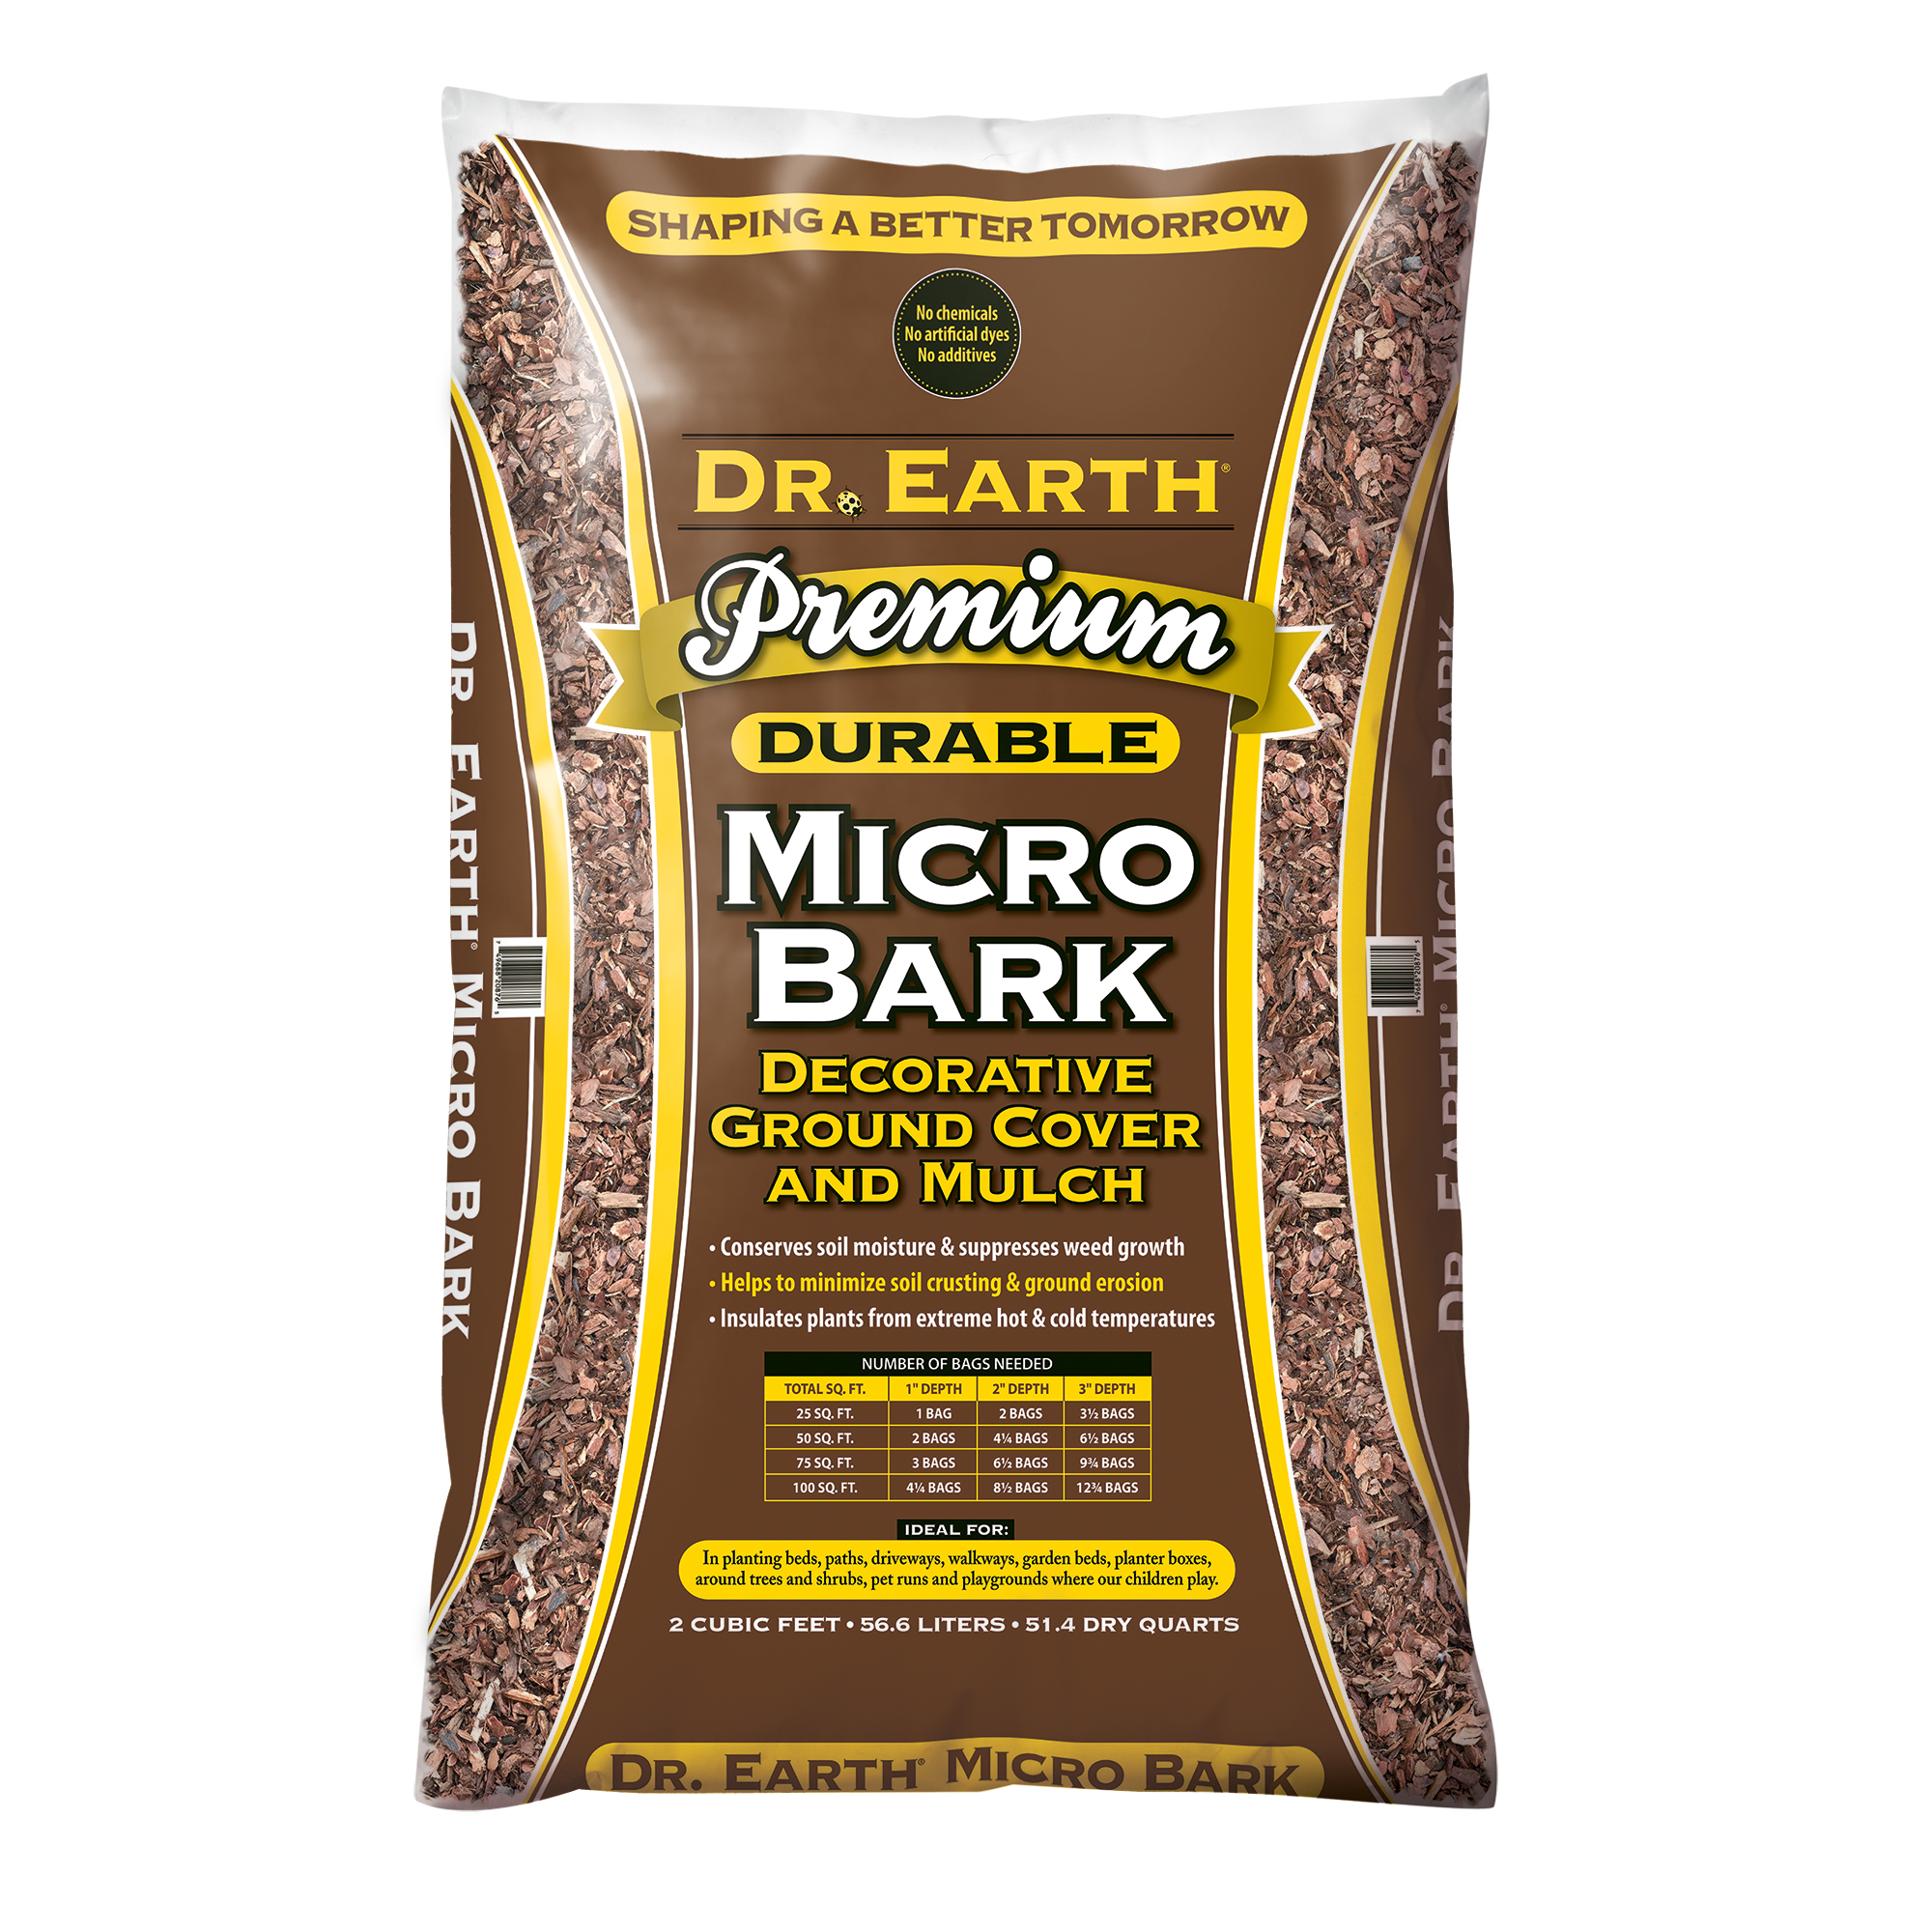 DR. EARTH PREMIUM MICRO BARK  DECORATIVE GROUND COVER AND MULCH